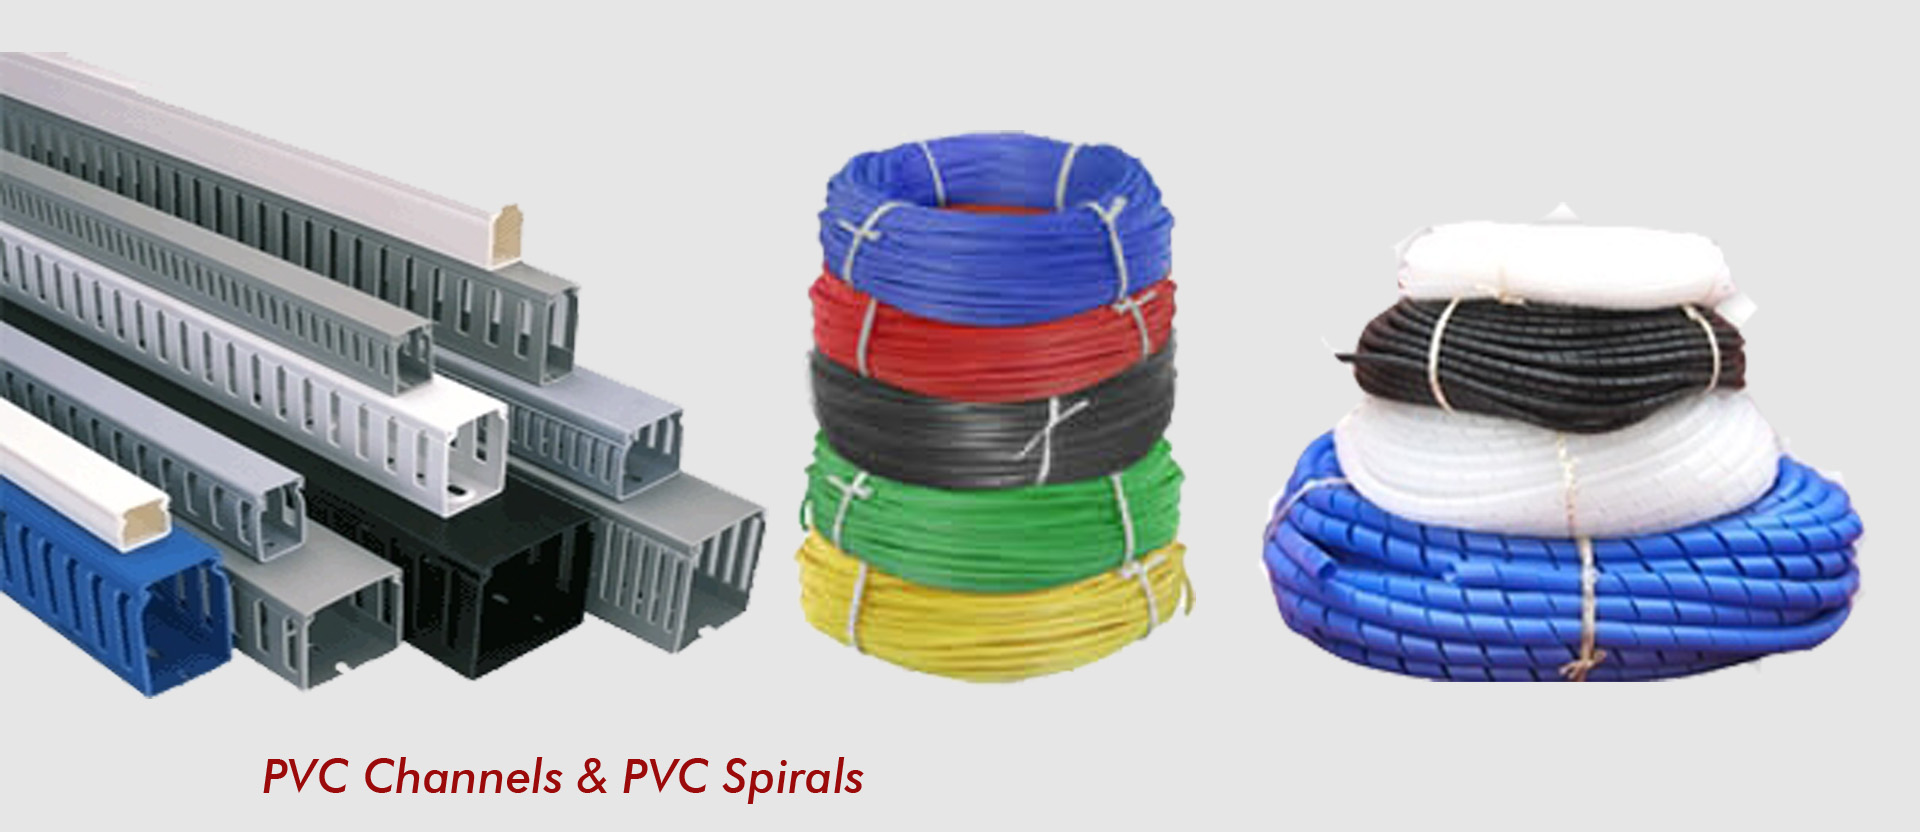 Shree Electricals Controls Electrical Wiring Channels Slide 1 2 3